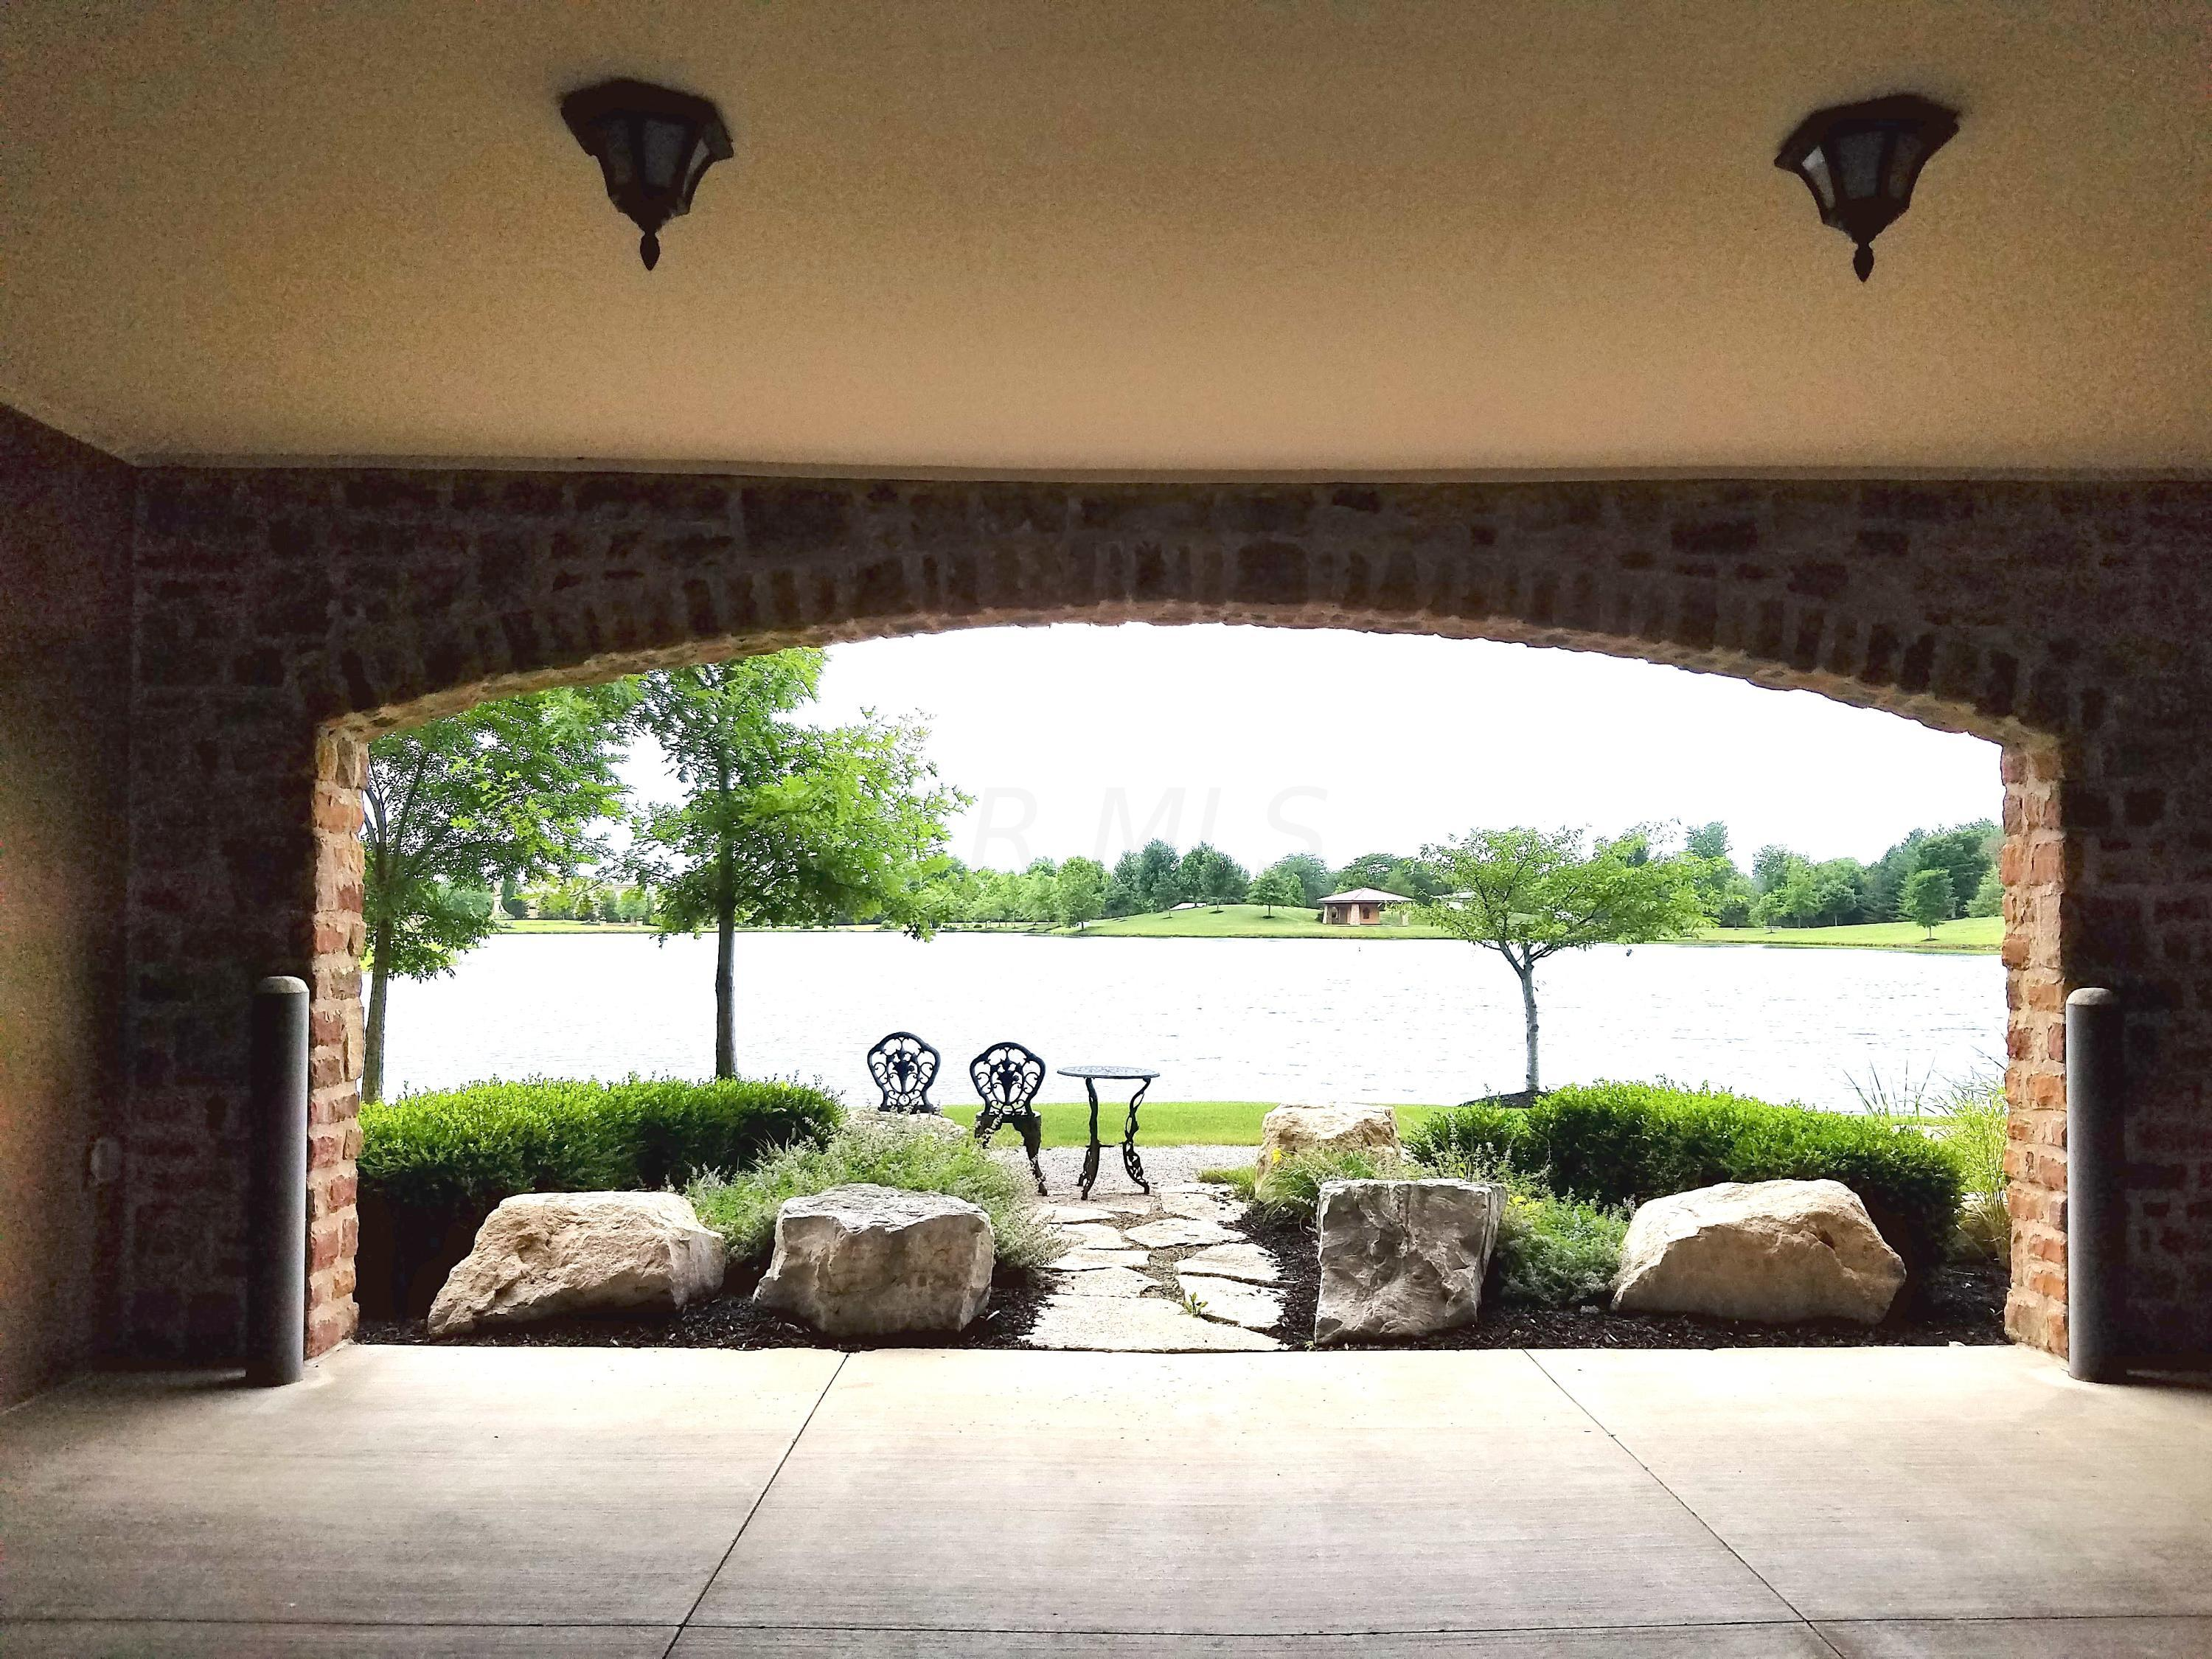 9133 Terrazza North Court, Dublin, Ohio 43016, 2 Bedrooms Bedrooms, ,2 BathroomsBathrooms,Residential,For Sale,Terrazza North,220023517